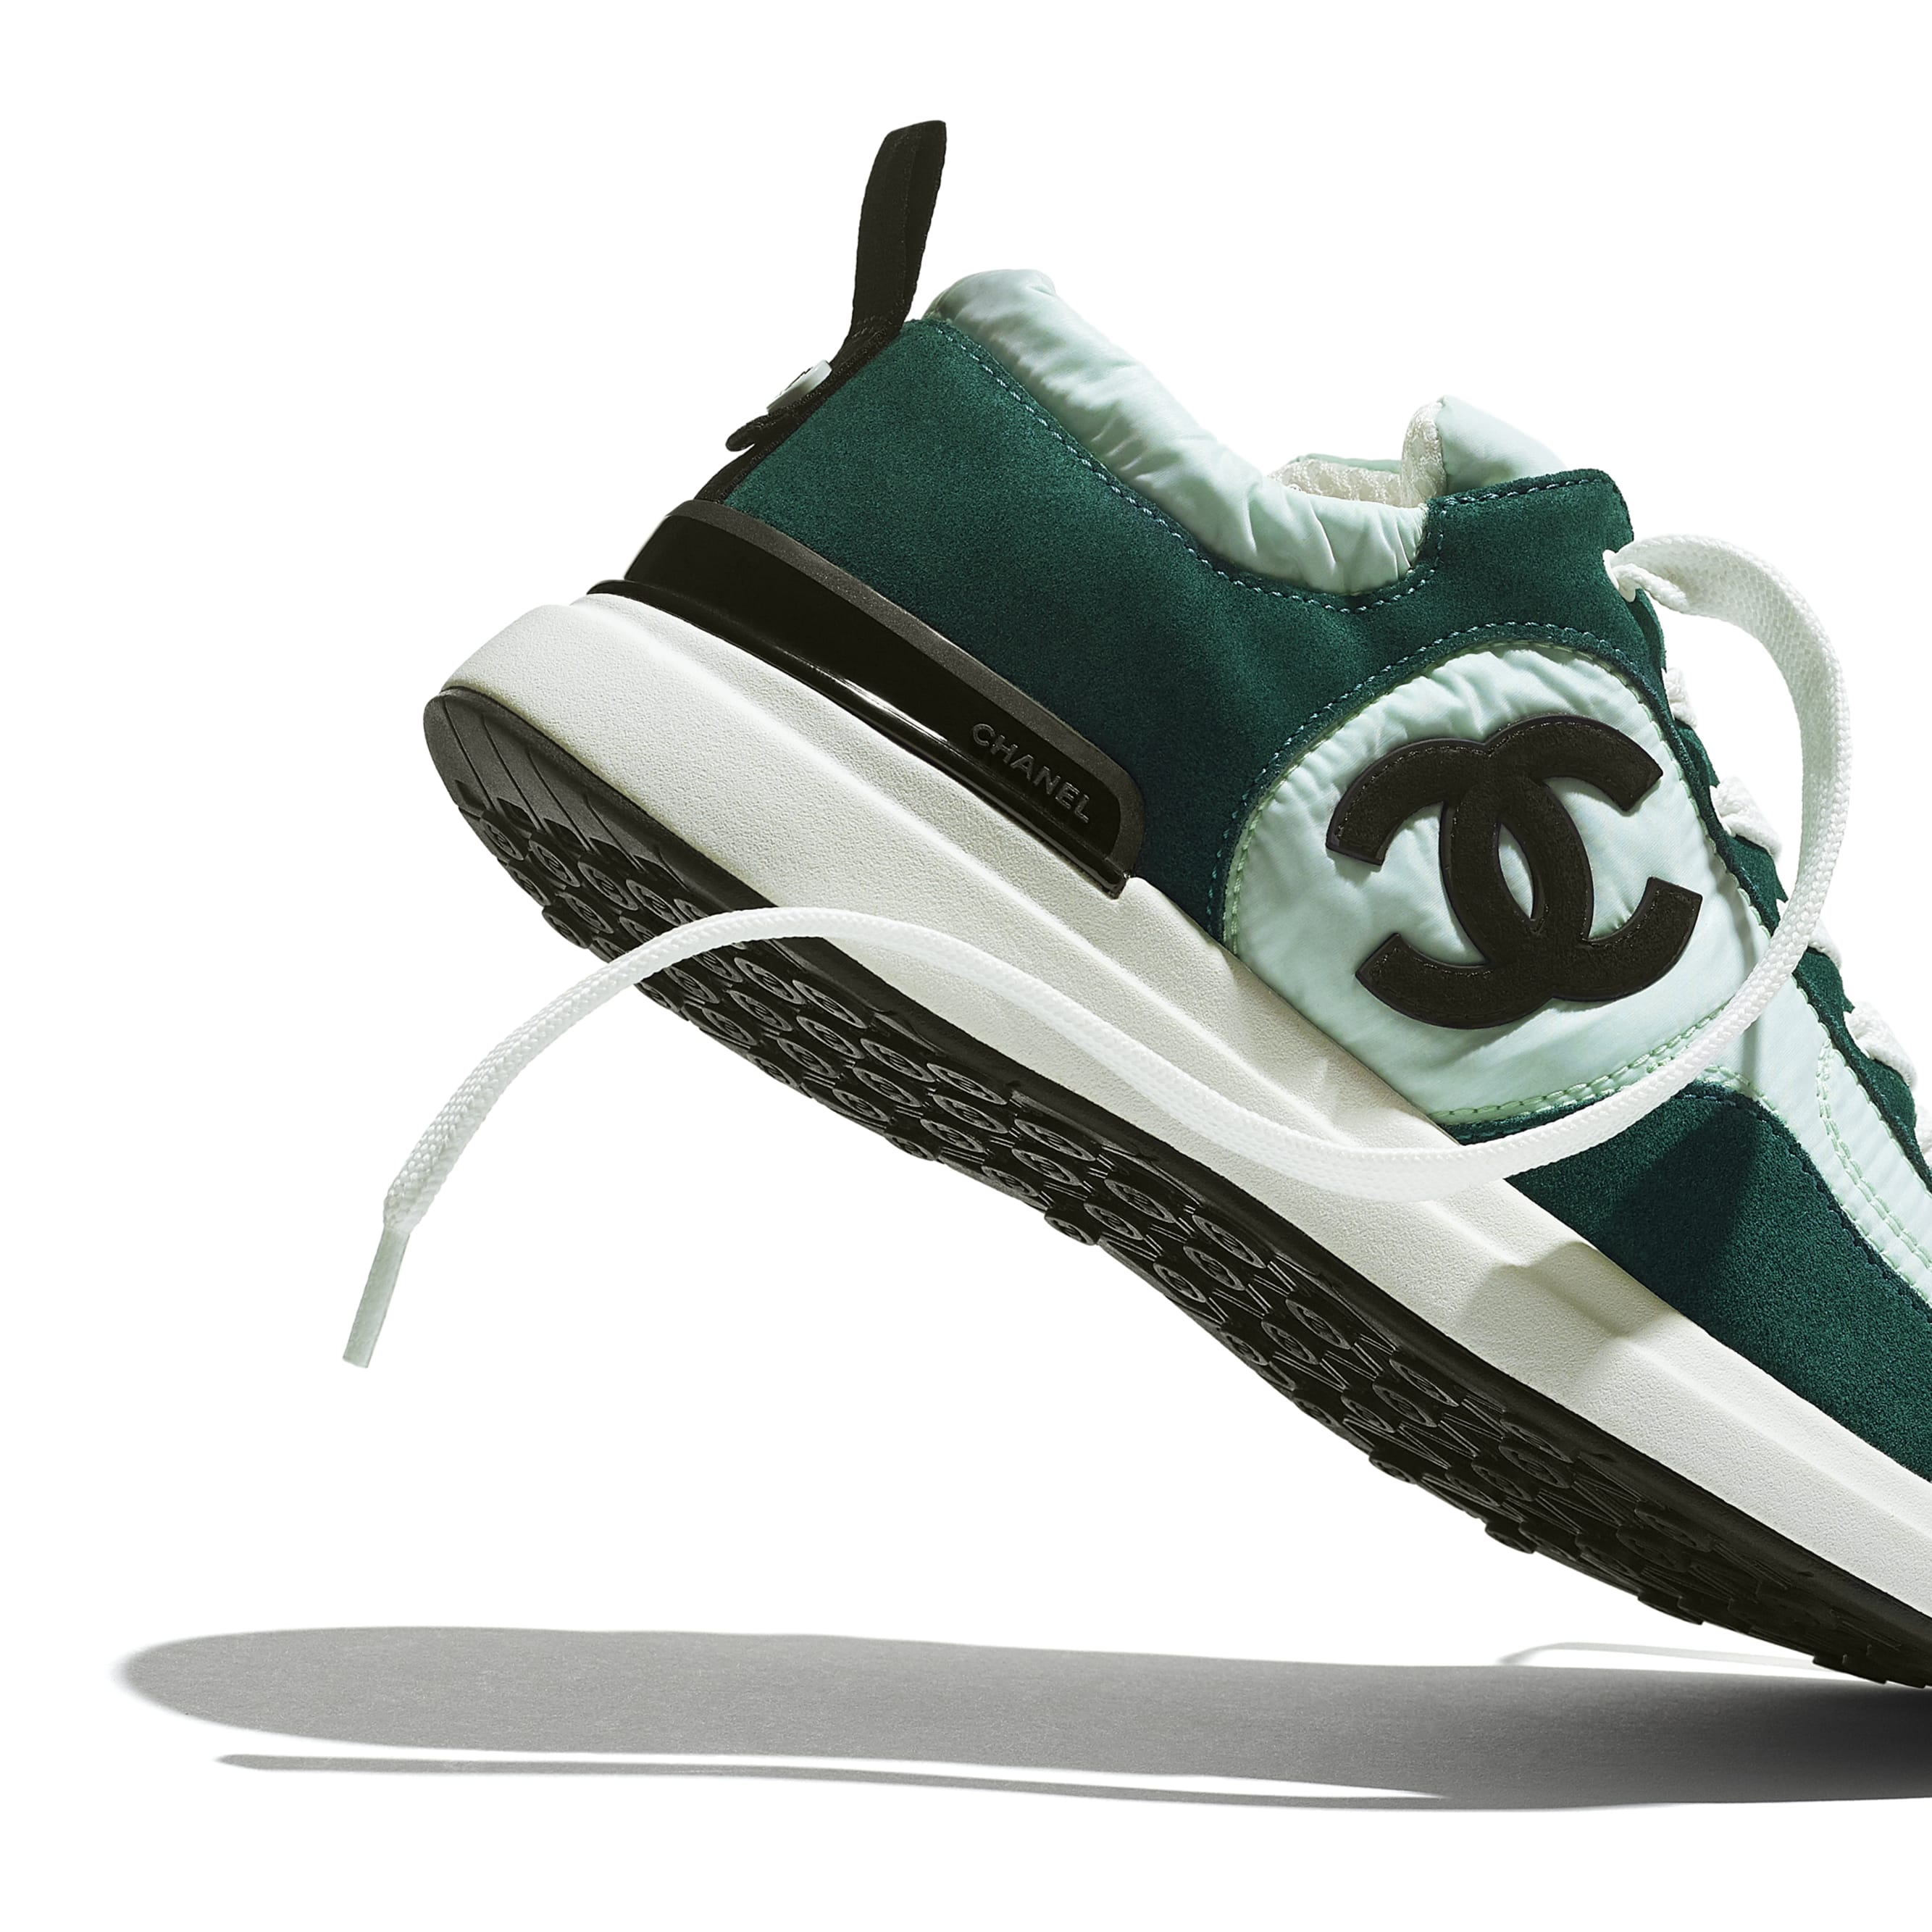 Trainers - Light Green & Green - Suede Calfskin & Nylon - CHANEL - Extra view - see standard sized version